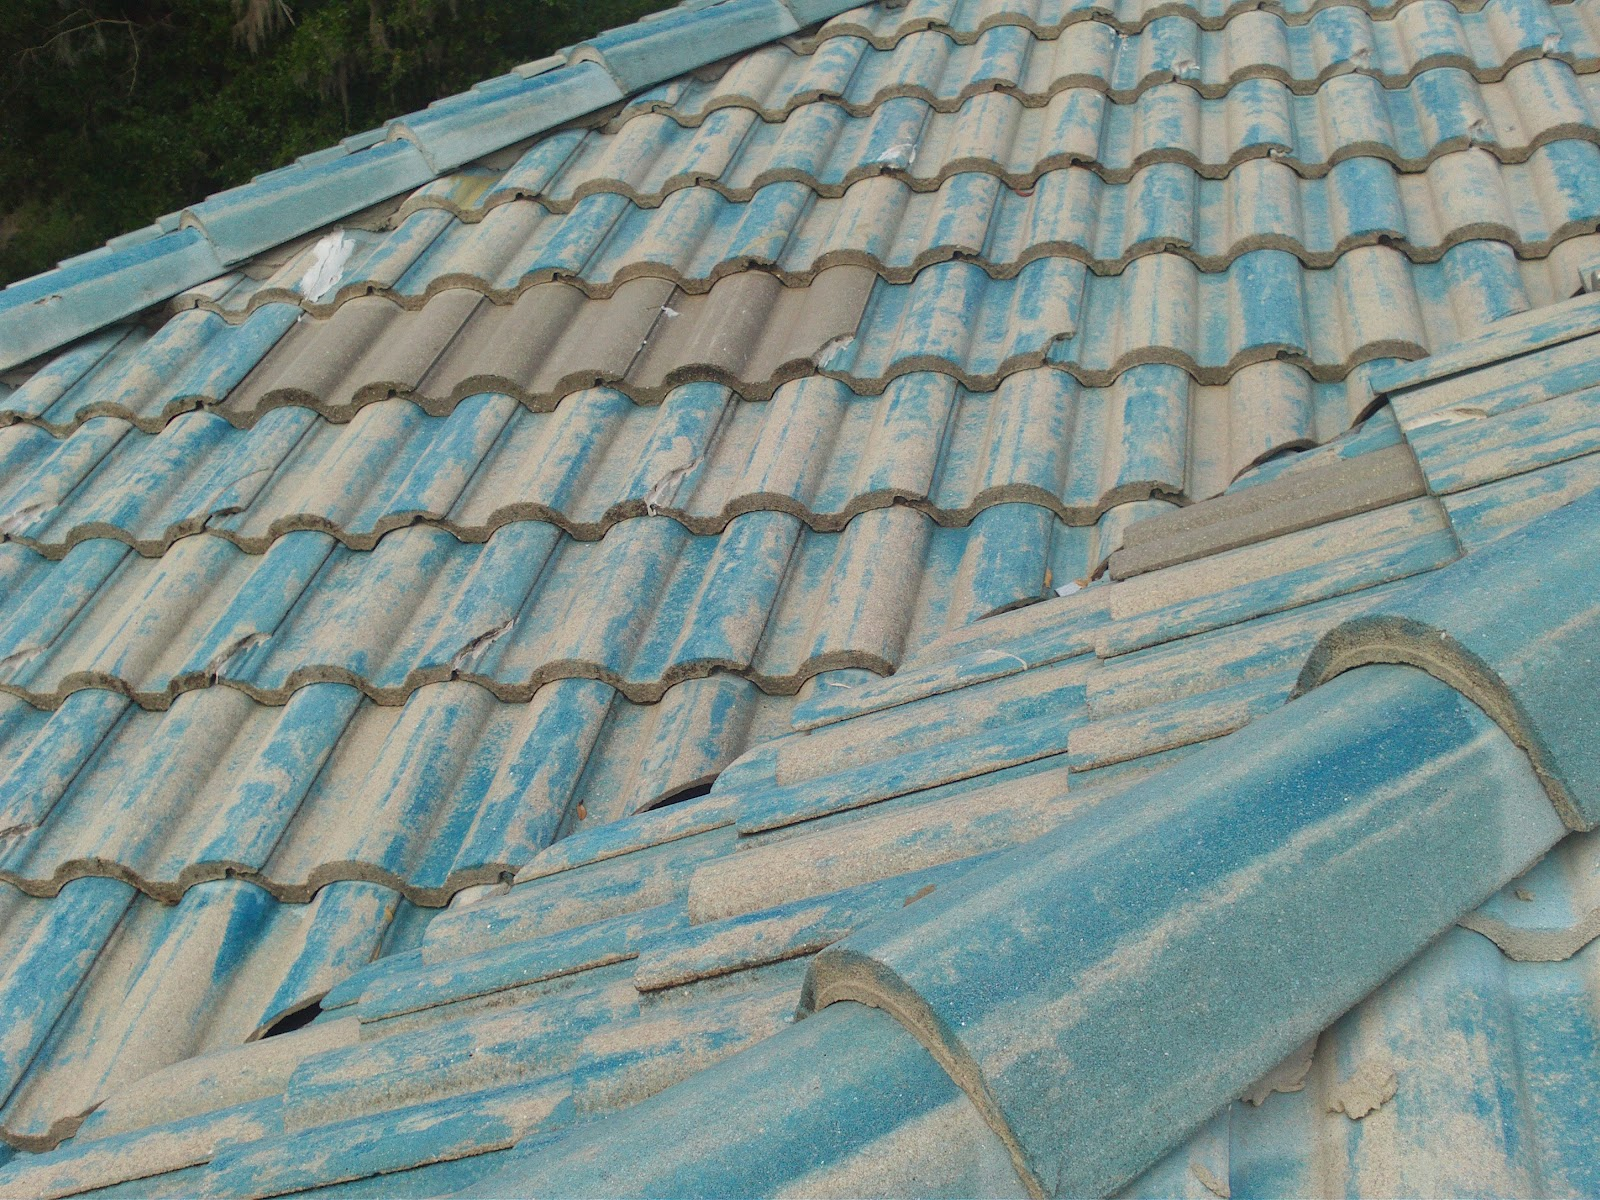 Alberson S Tile Roof Glaze Inc Winter Springs Roofing